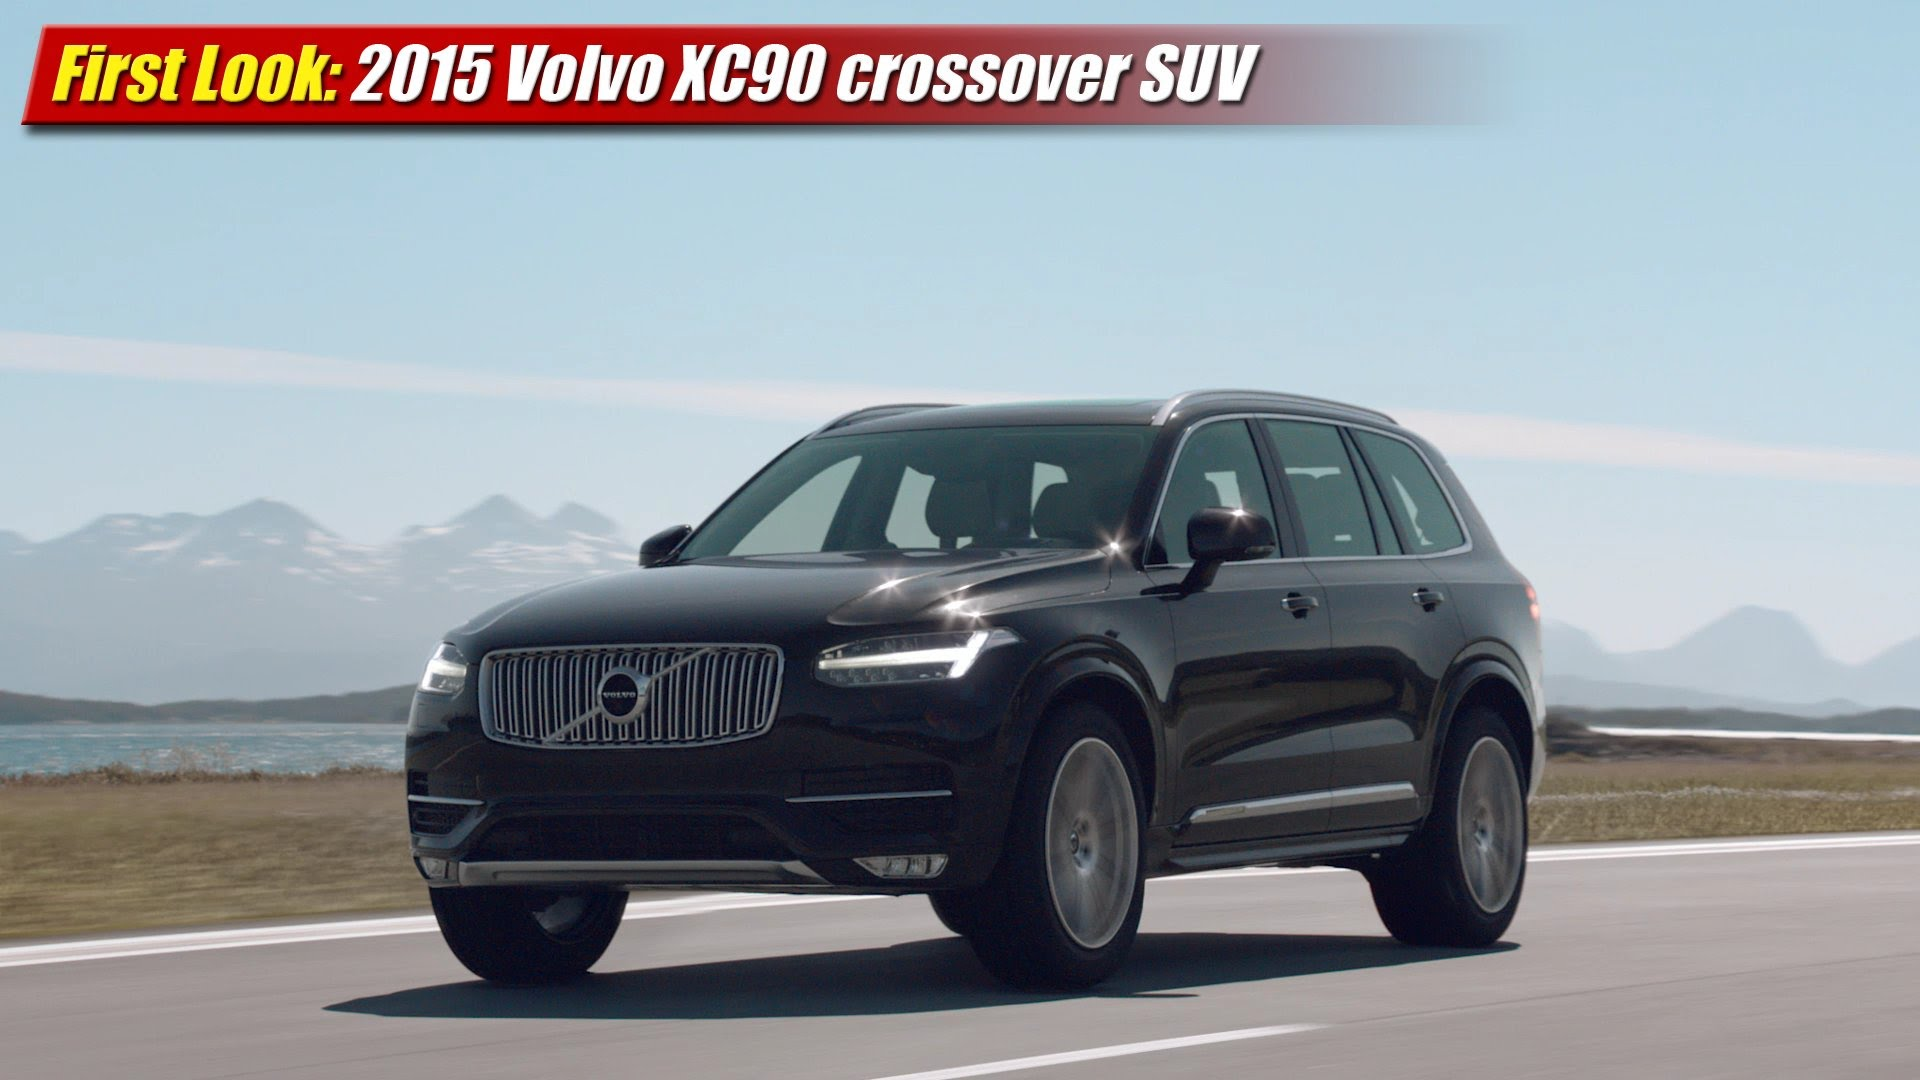 first look 2015 volvo xc90 crossover suv testdriven tv. Black Bedroom Furniture Sets. Home Design Ideas